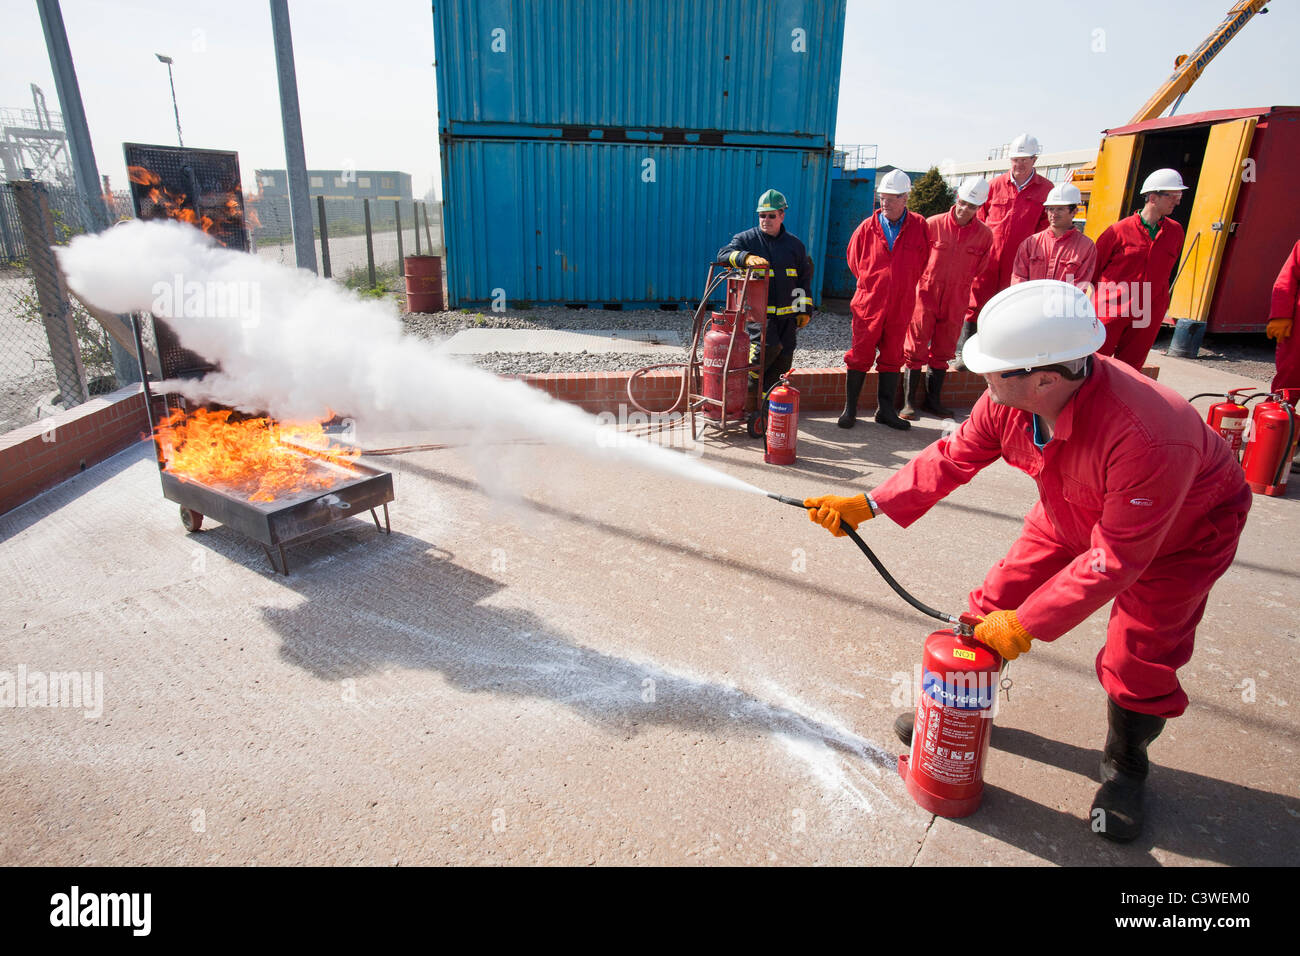 Workers in the offshore industry practice fire fighting with a powder extinguisher as part of an industry training - Stock Image